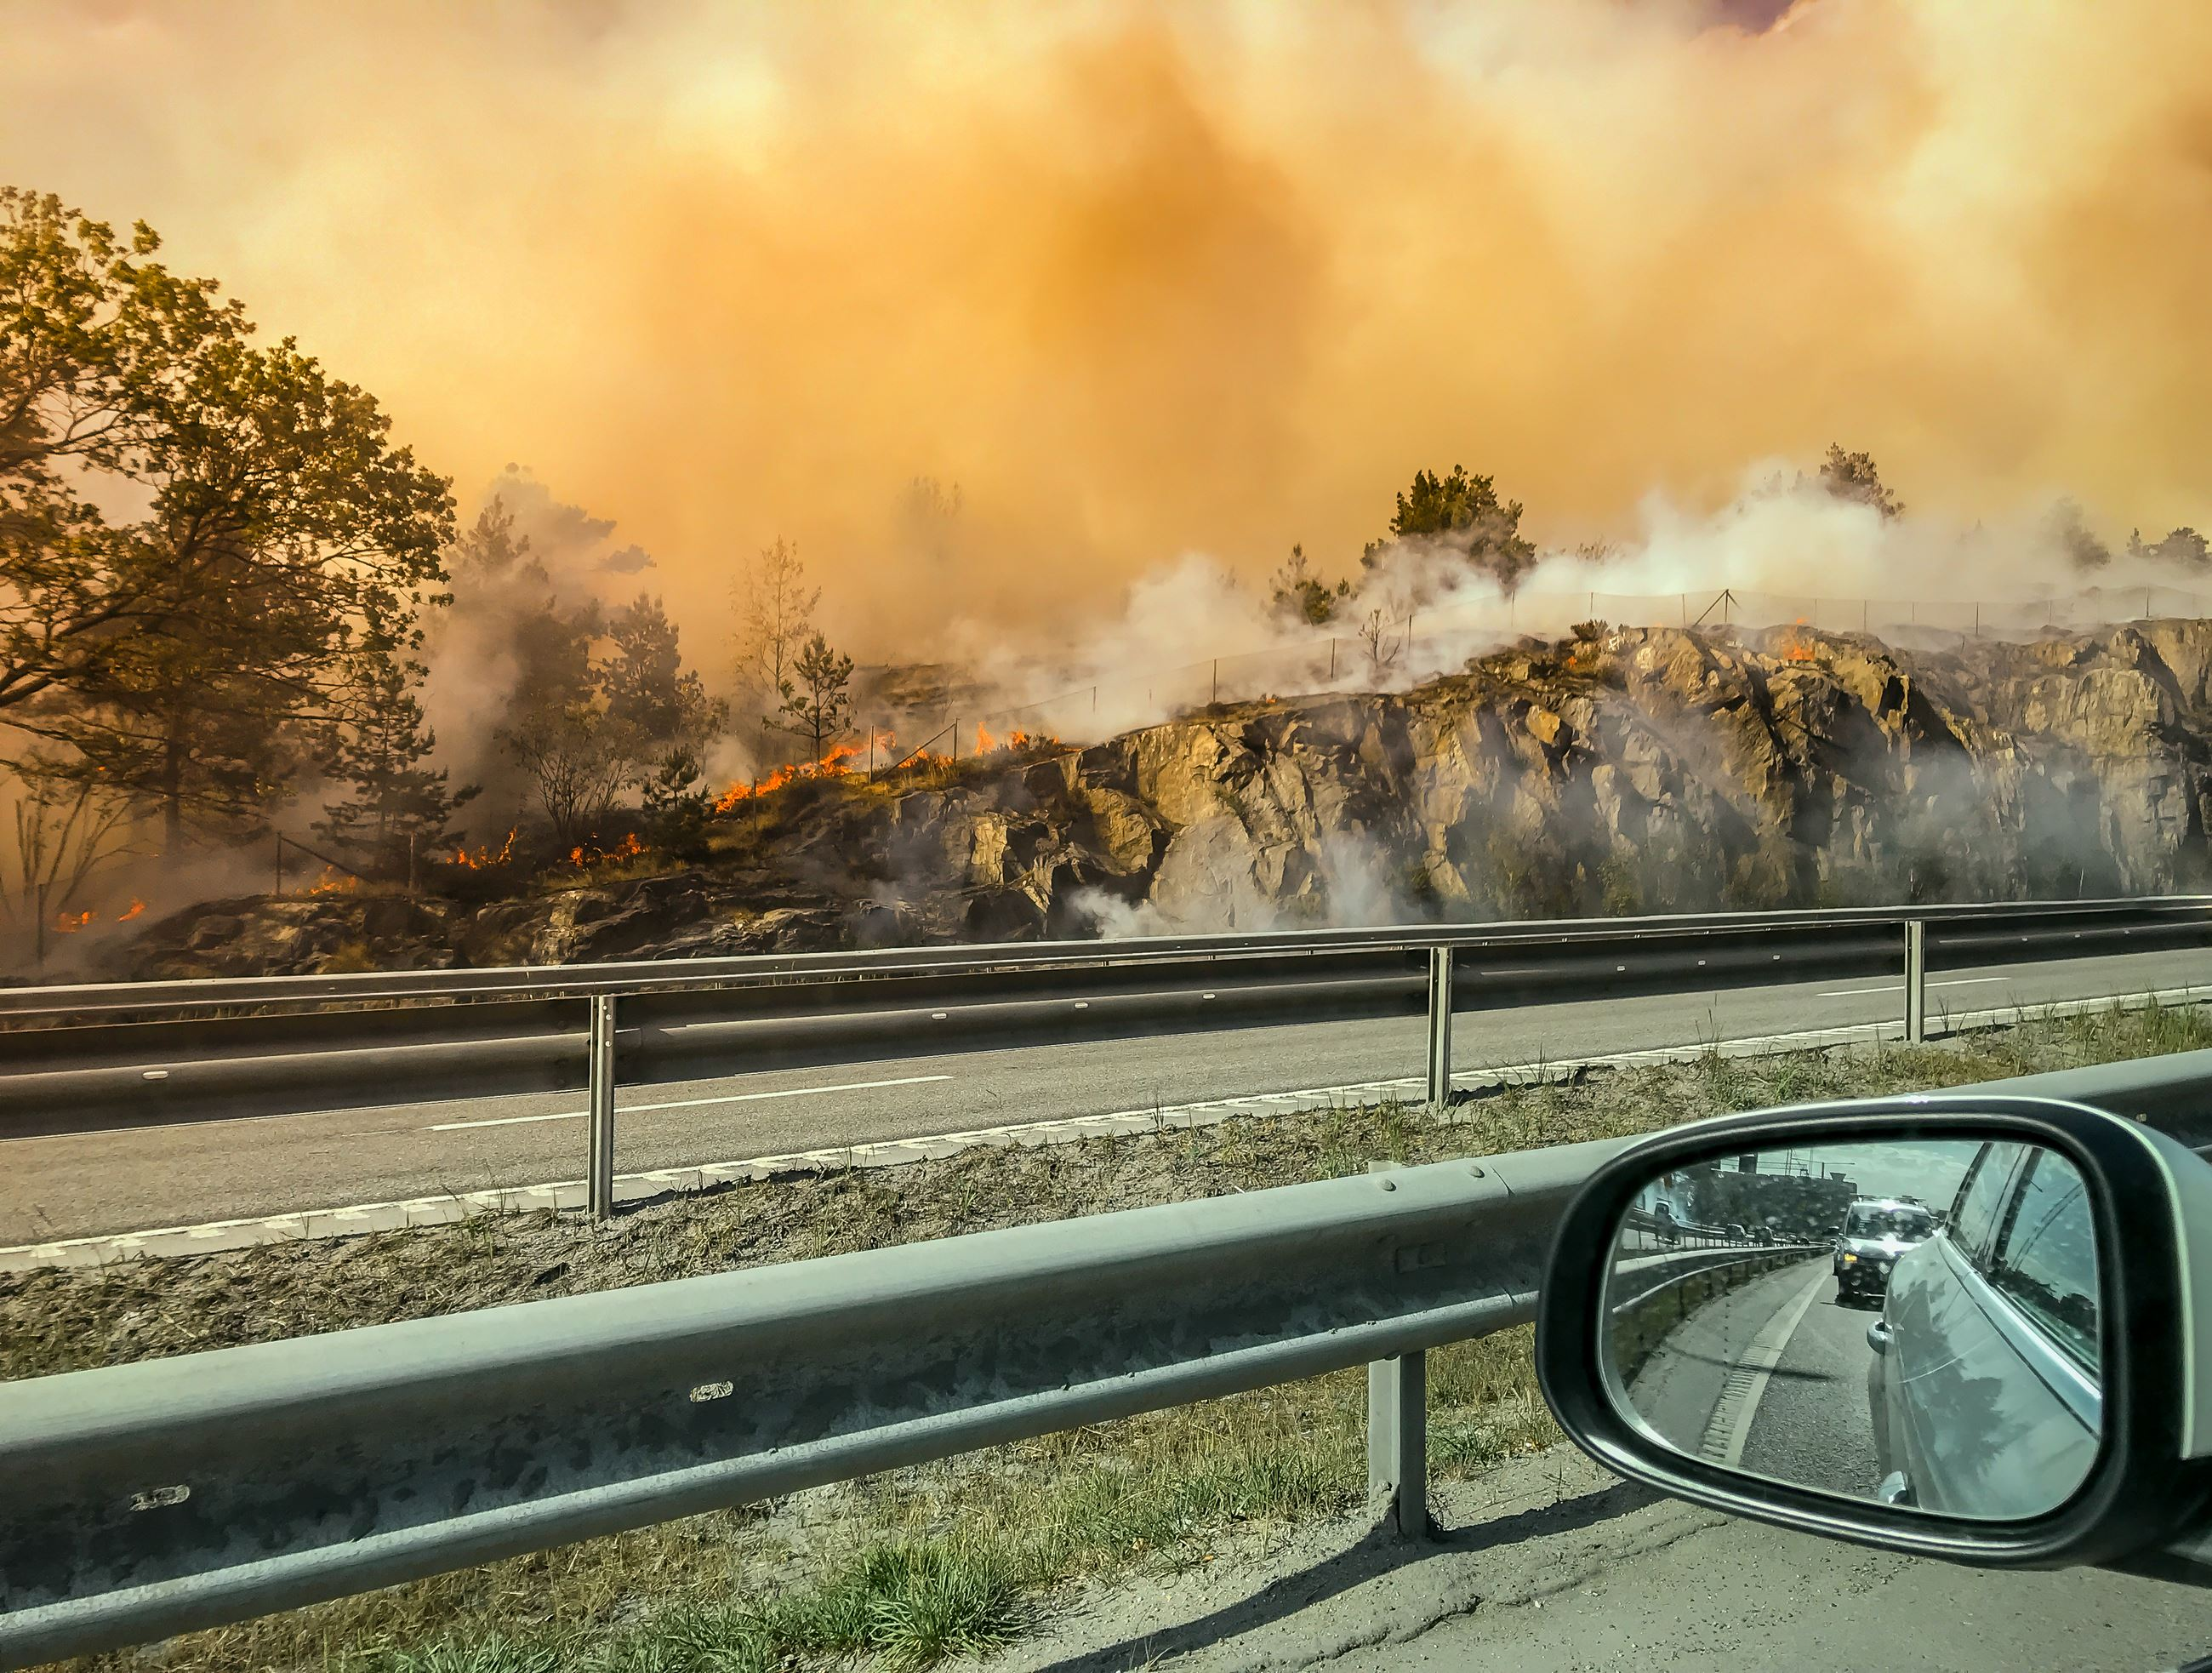 Forest-fire-near-road-or-hightway-seen-from-car.-978462692_4000x3024